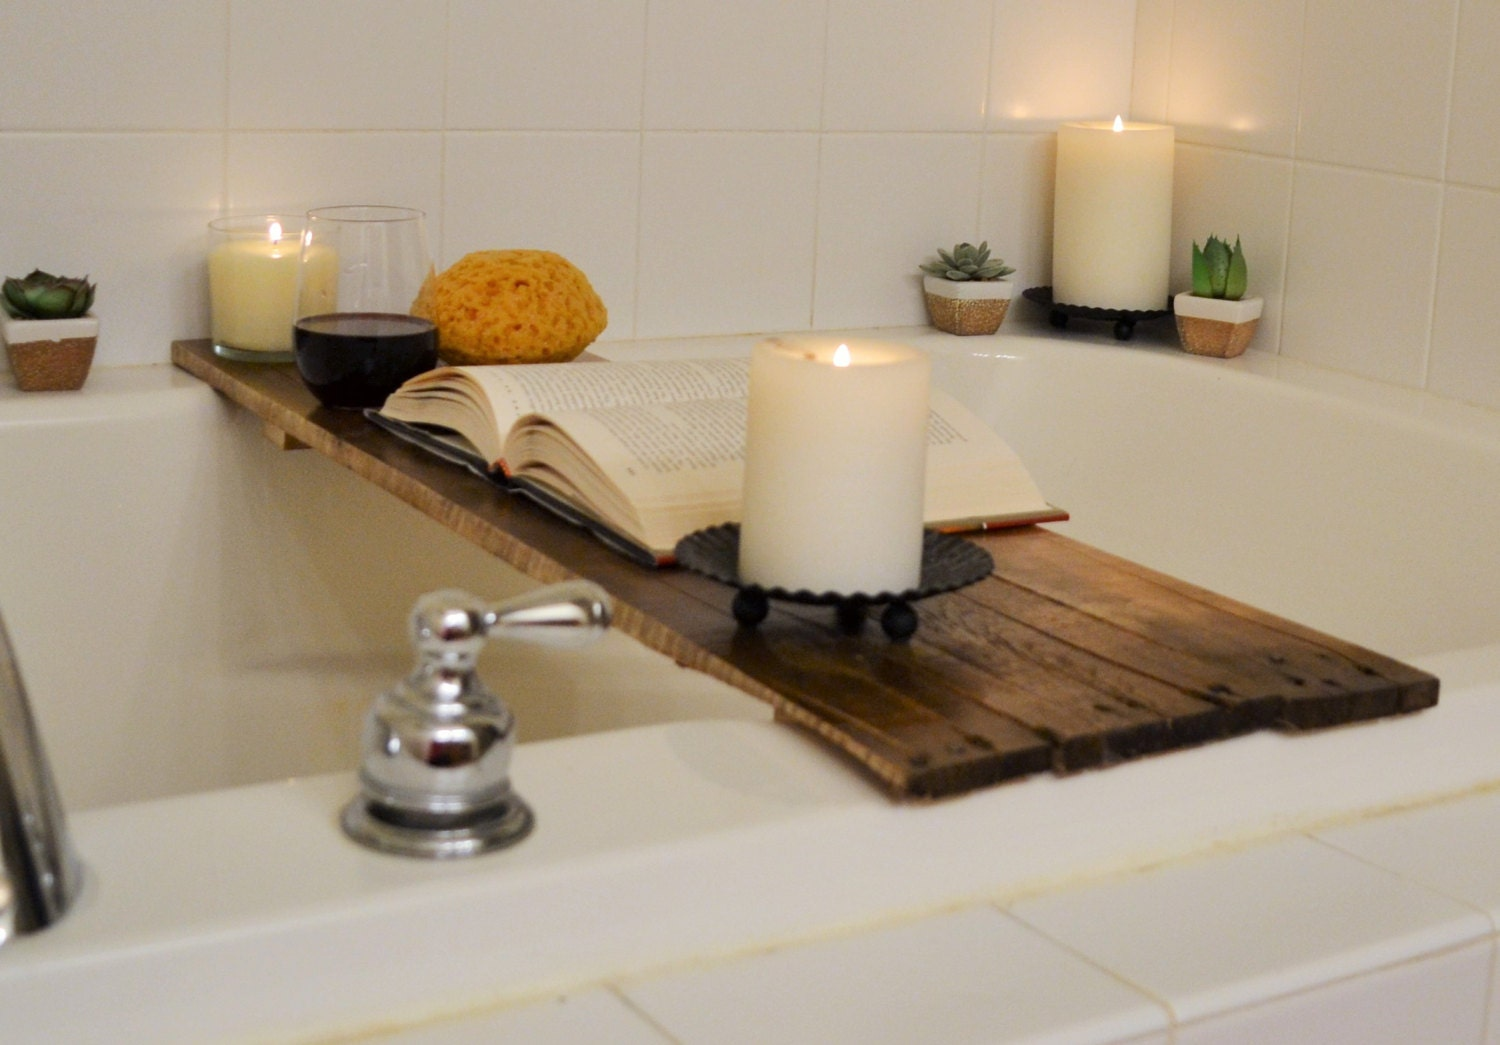 Bathtub Tray Bathing Board for storing items during bath time